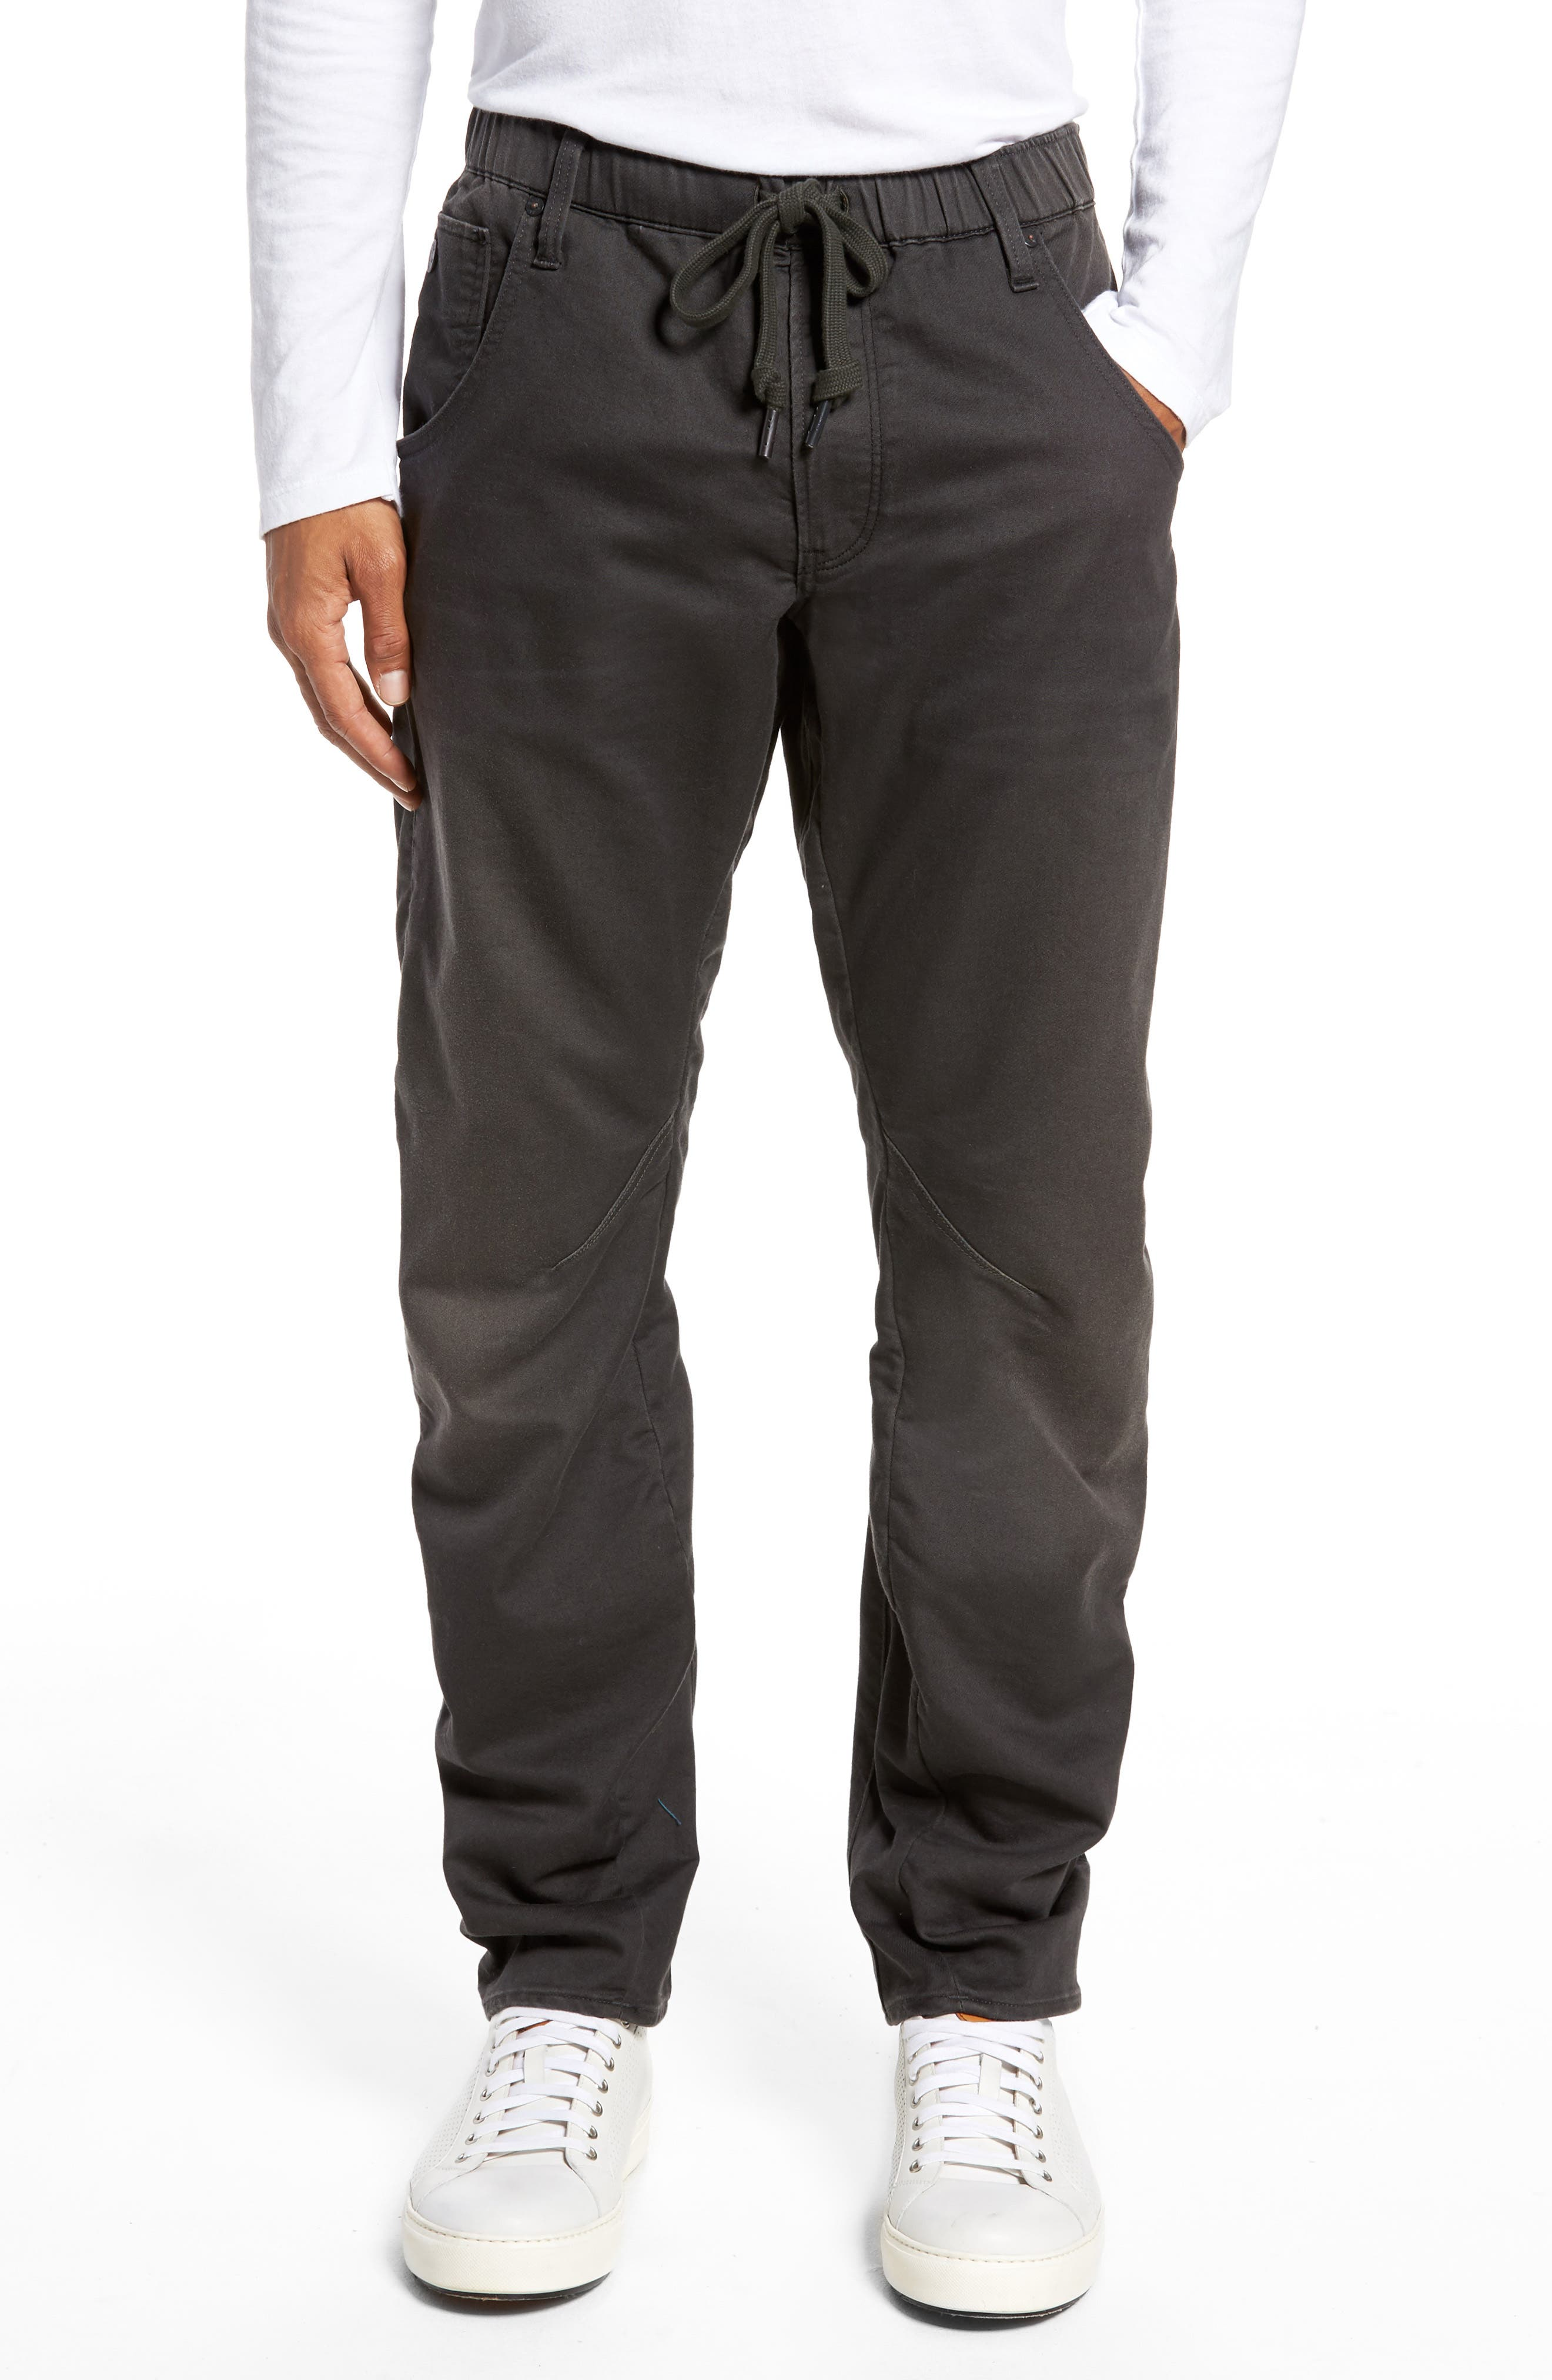 Arc 3D Sport Tapered Fit Jogger Pants,                         Main,                         color, 020